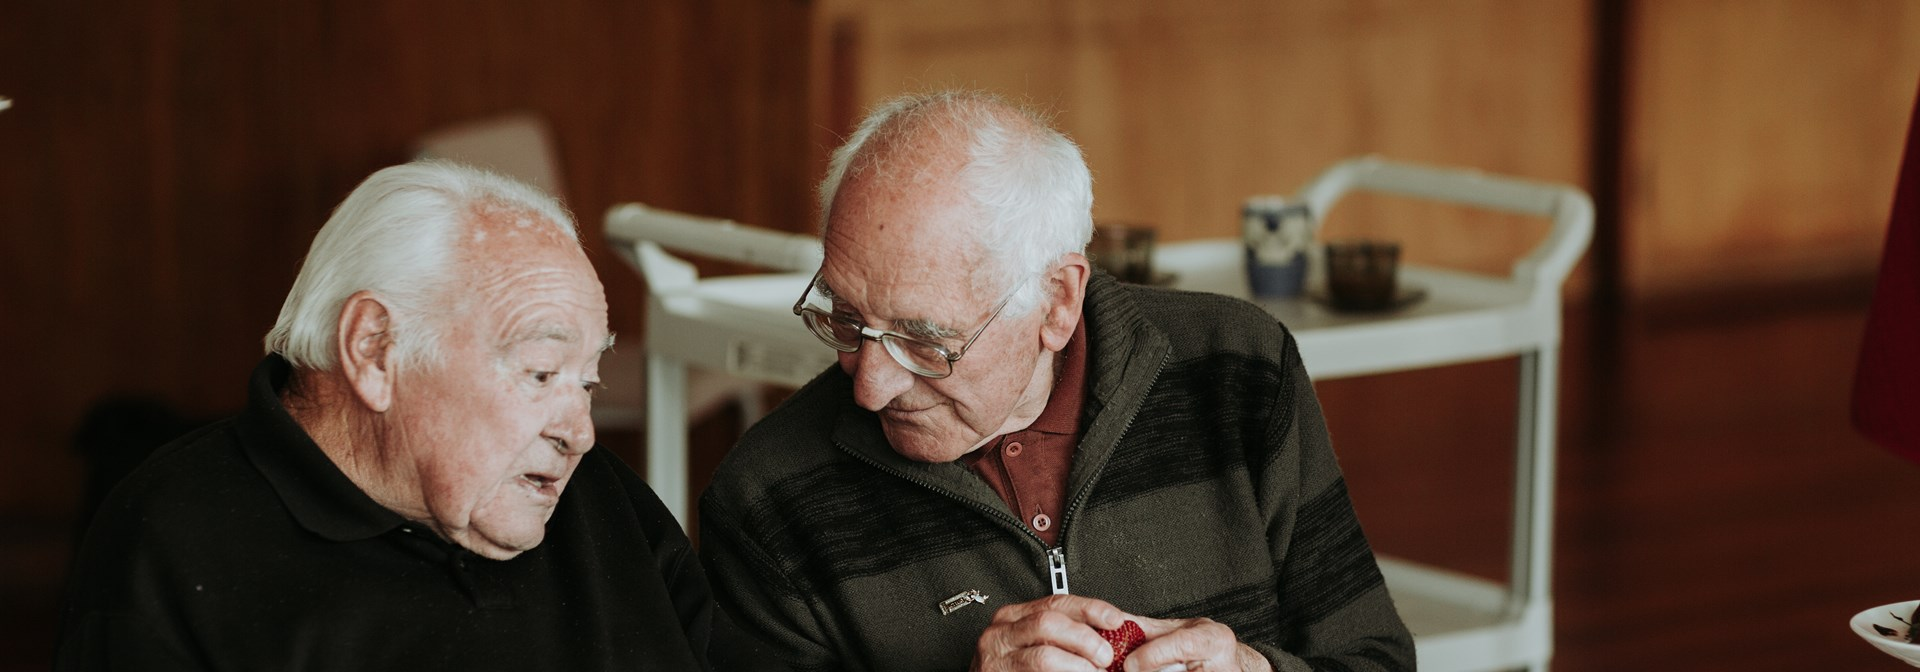 The Selwyn Foundations charitable outreach provides housing for older Aucklanders